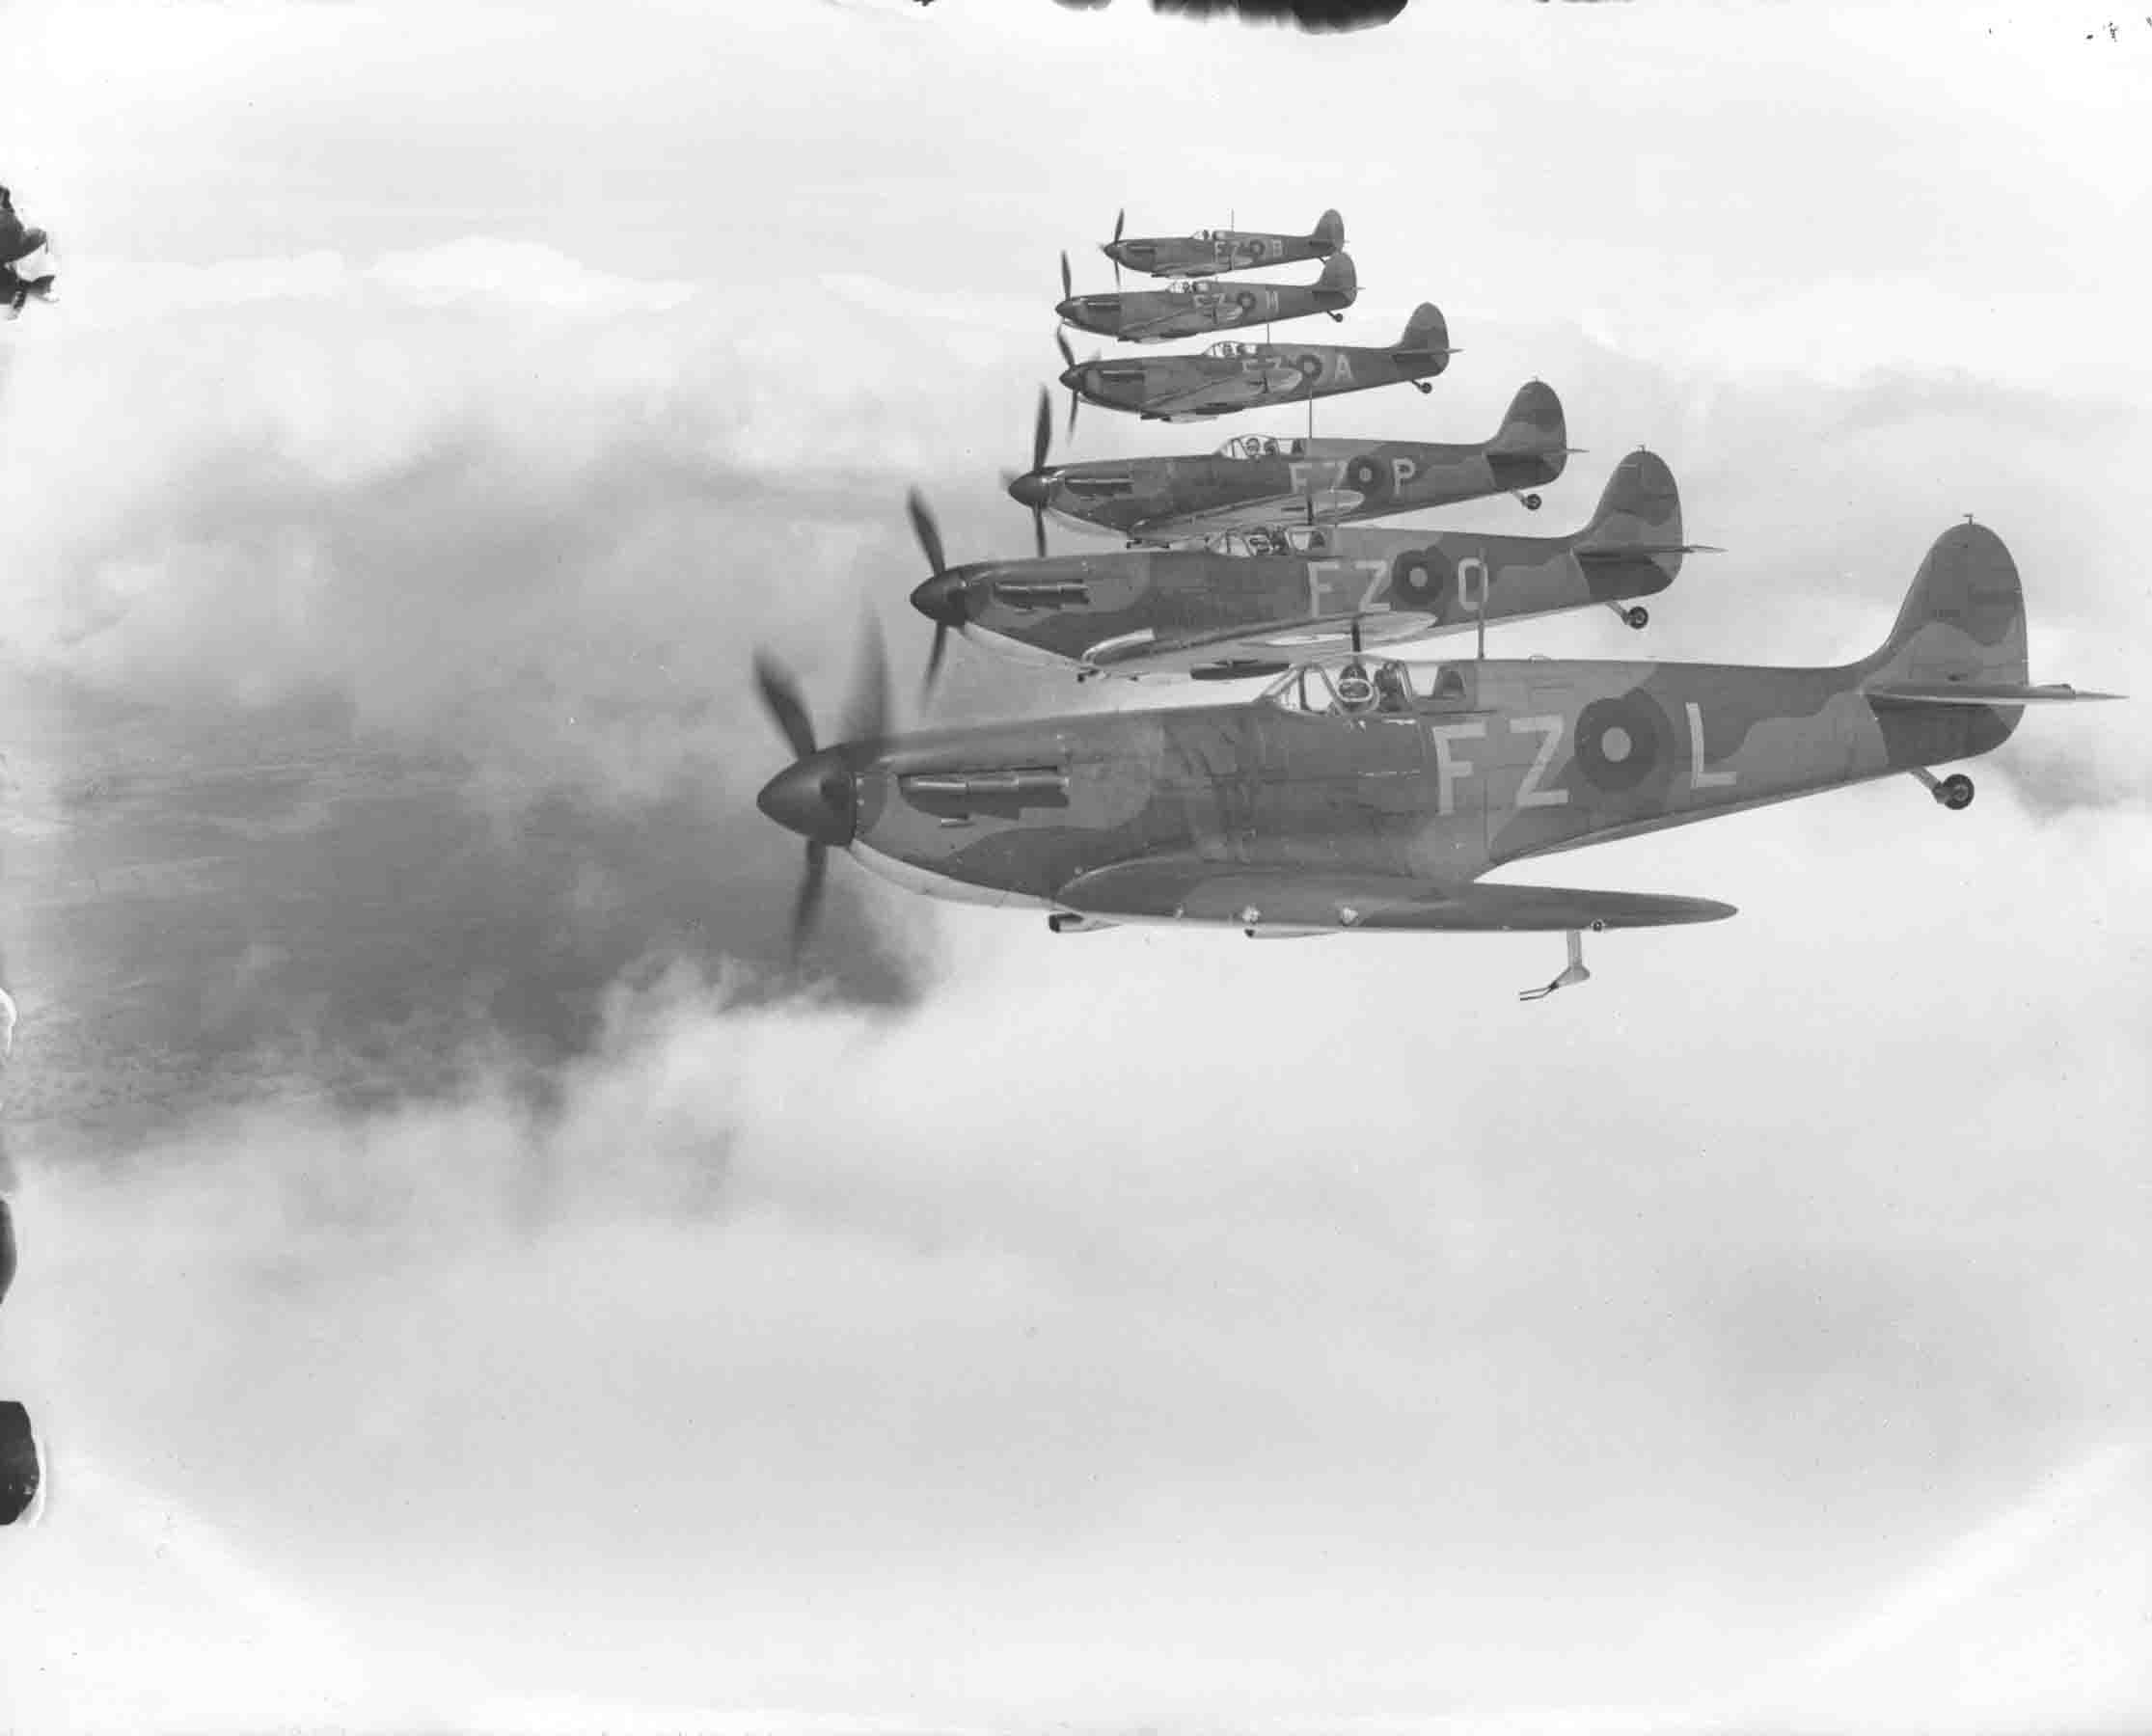 Spitfire Mk1s of 65 Sqn Hornchurch in flight